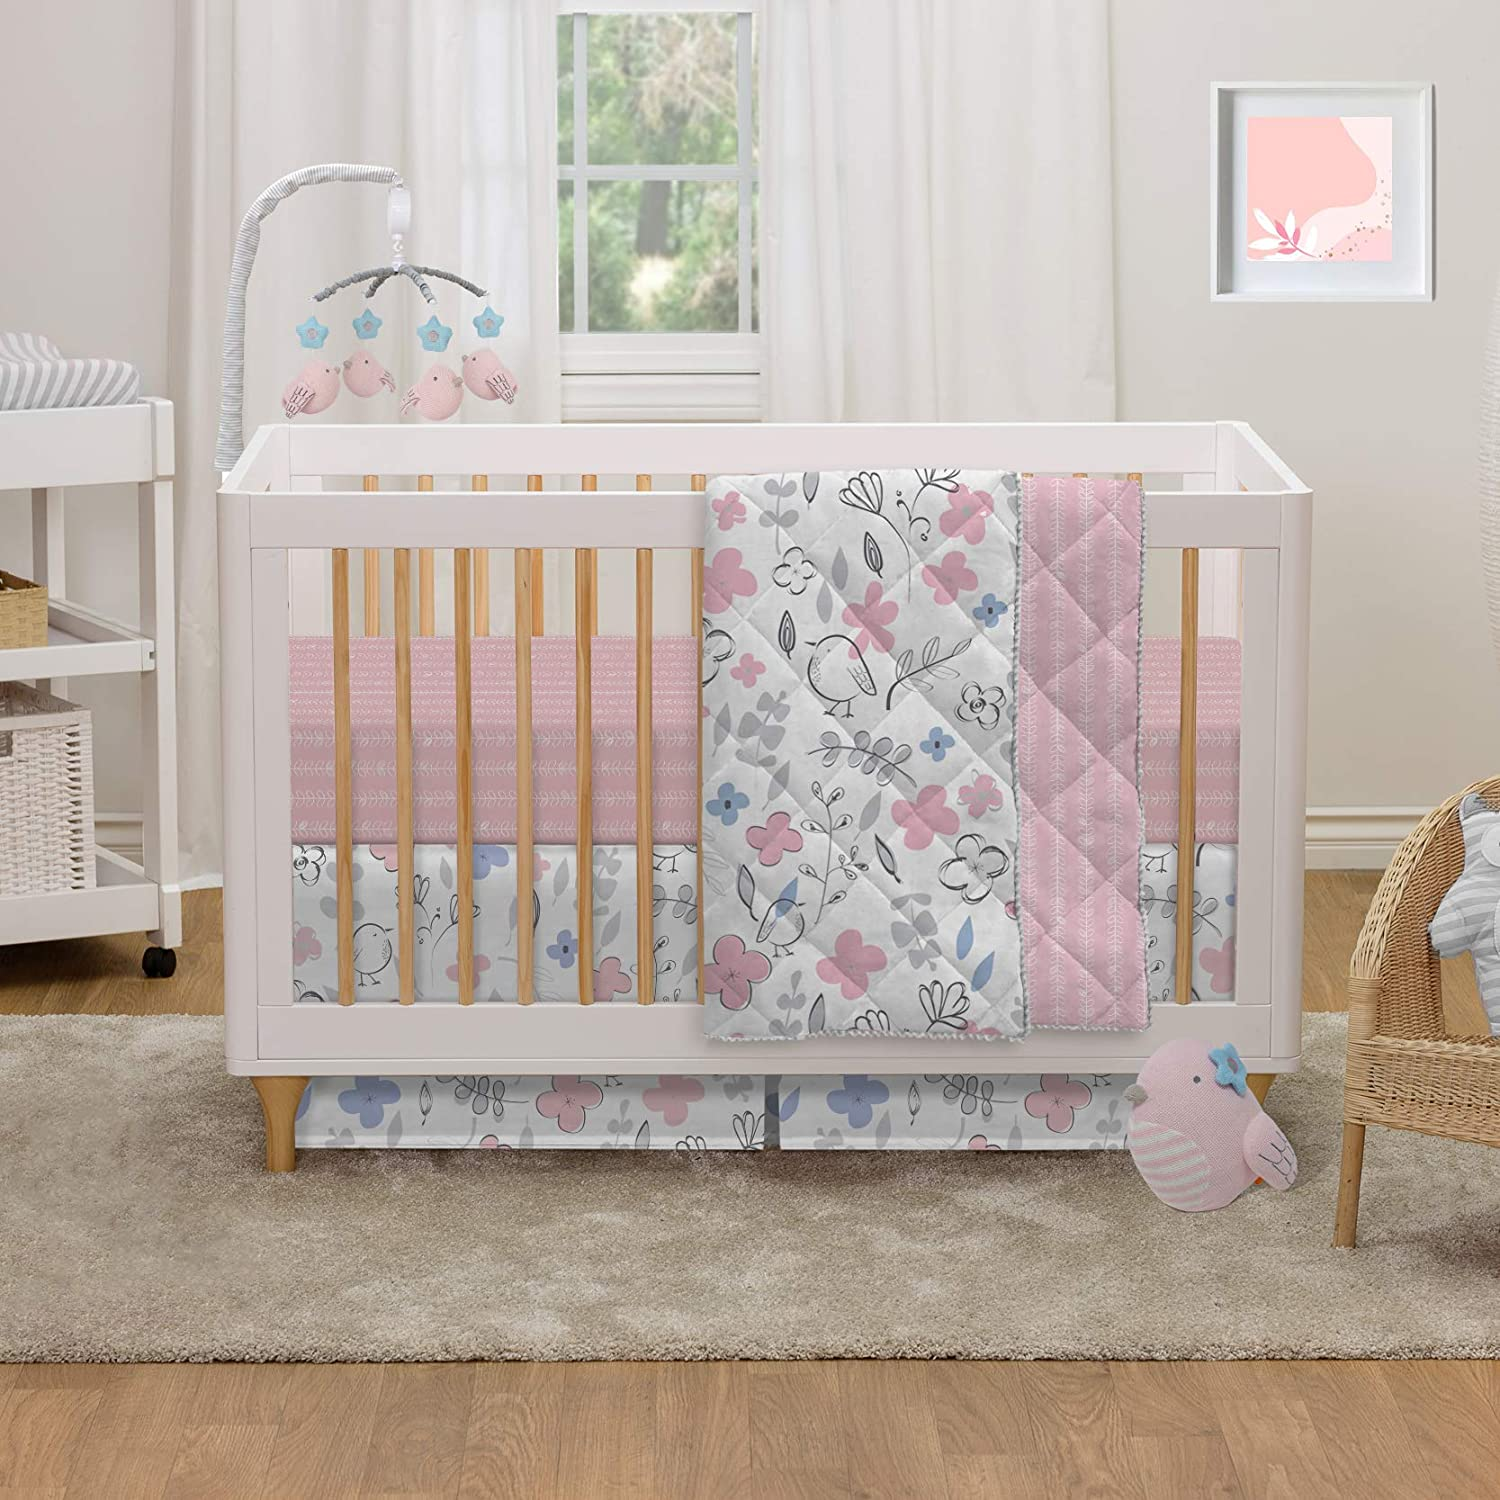 Lolli Living 4-Piece Cotton Baby Crib Bedding Set with Pink Mazie Flower and Bird Pattern.Complete Set with Comforter, 2 Fitted Sheets, and Bed Skirt.